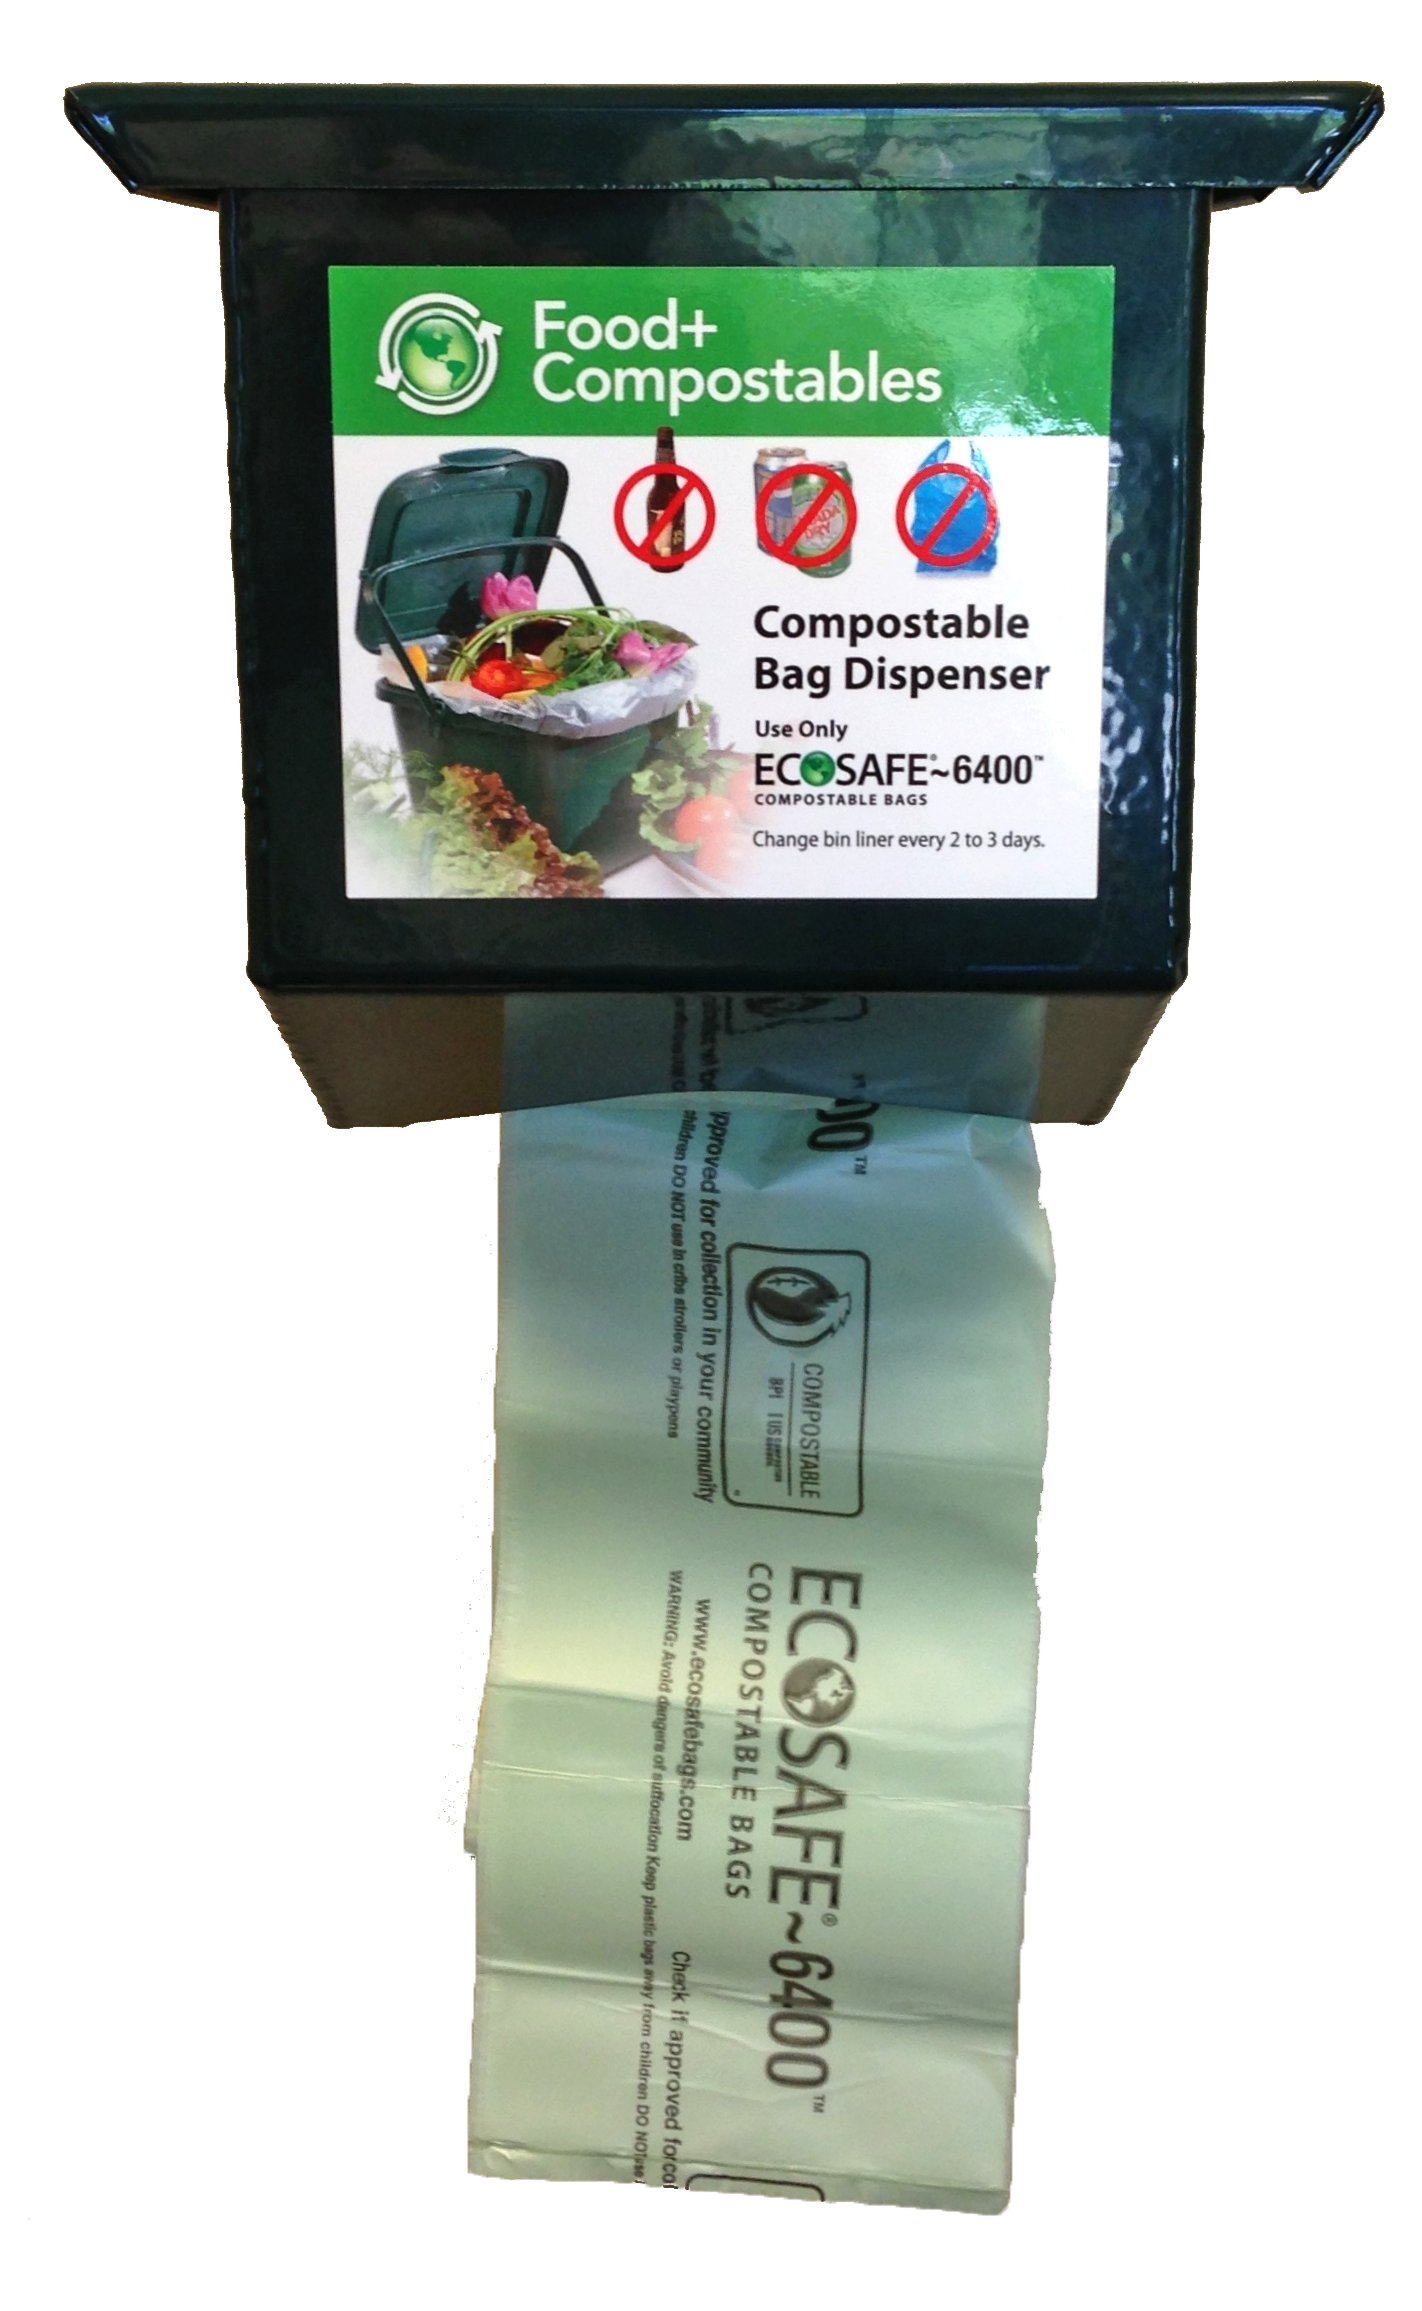 EcoSafe EcoSafe-MultiRes Compostable Bag Dispenser, Powder Coated Aluminium, Holds 325 Bags, Green by EcoSafe